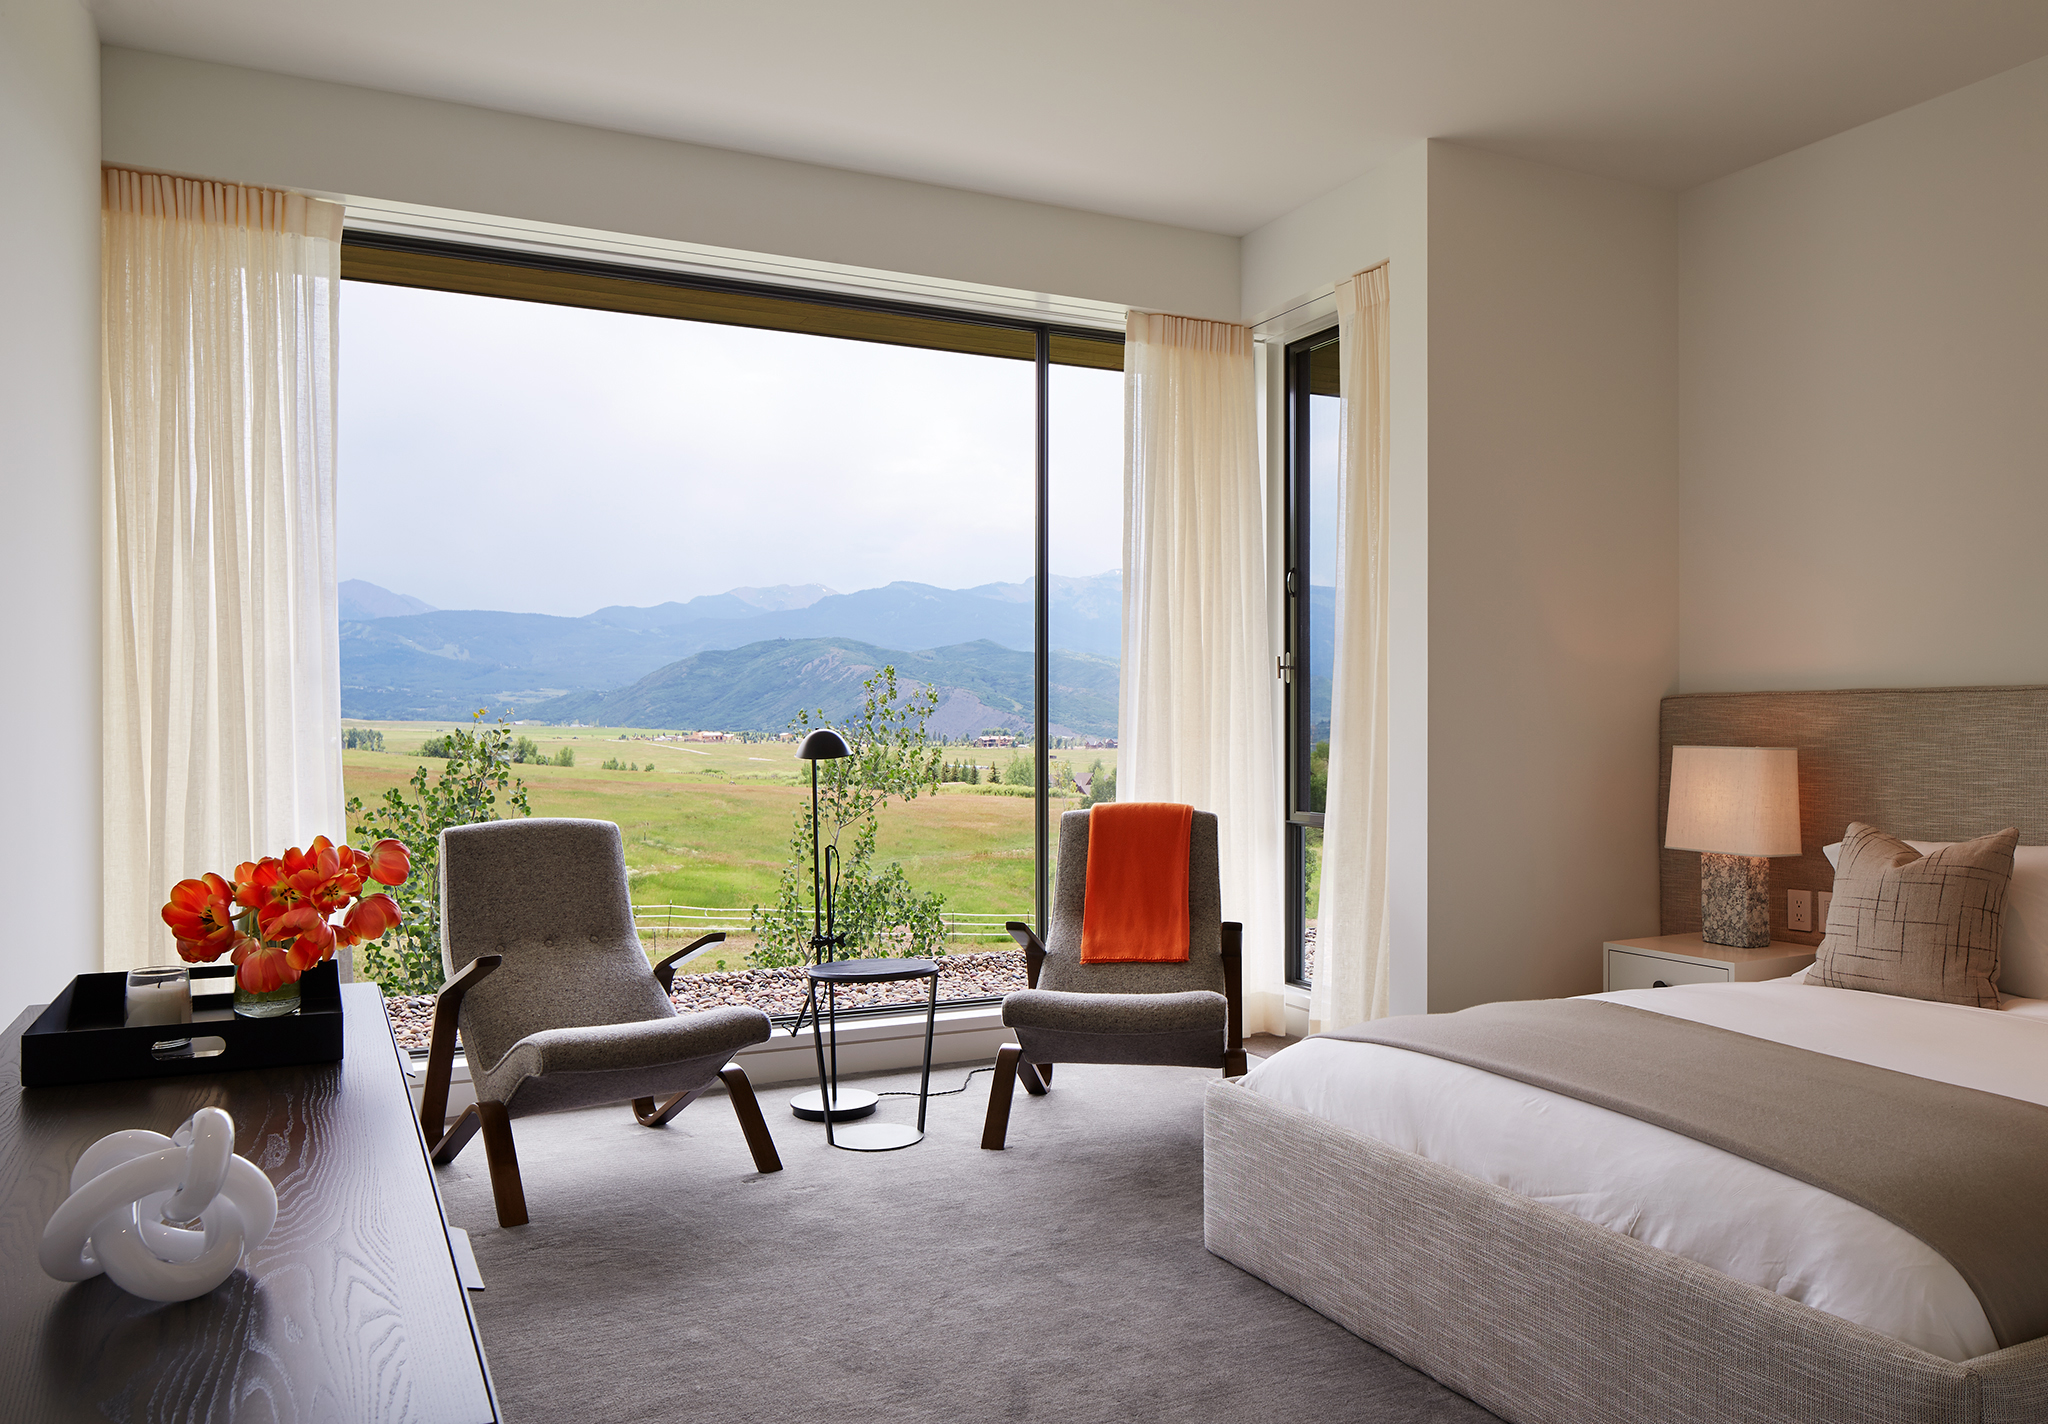 Second floor bedroom with floor-to-ceiling window to capture dramatic mountain view. By Robbins Architecture